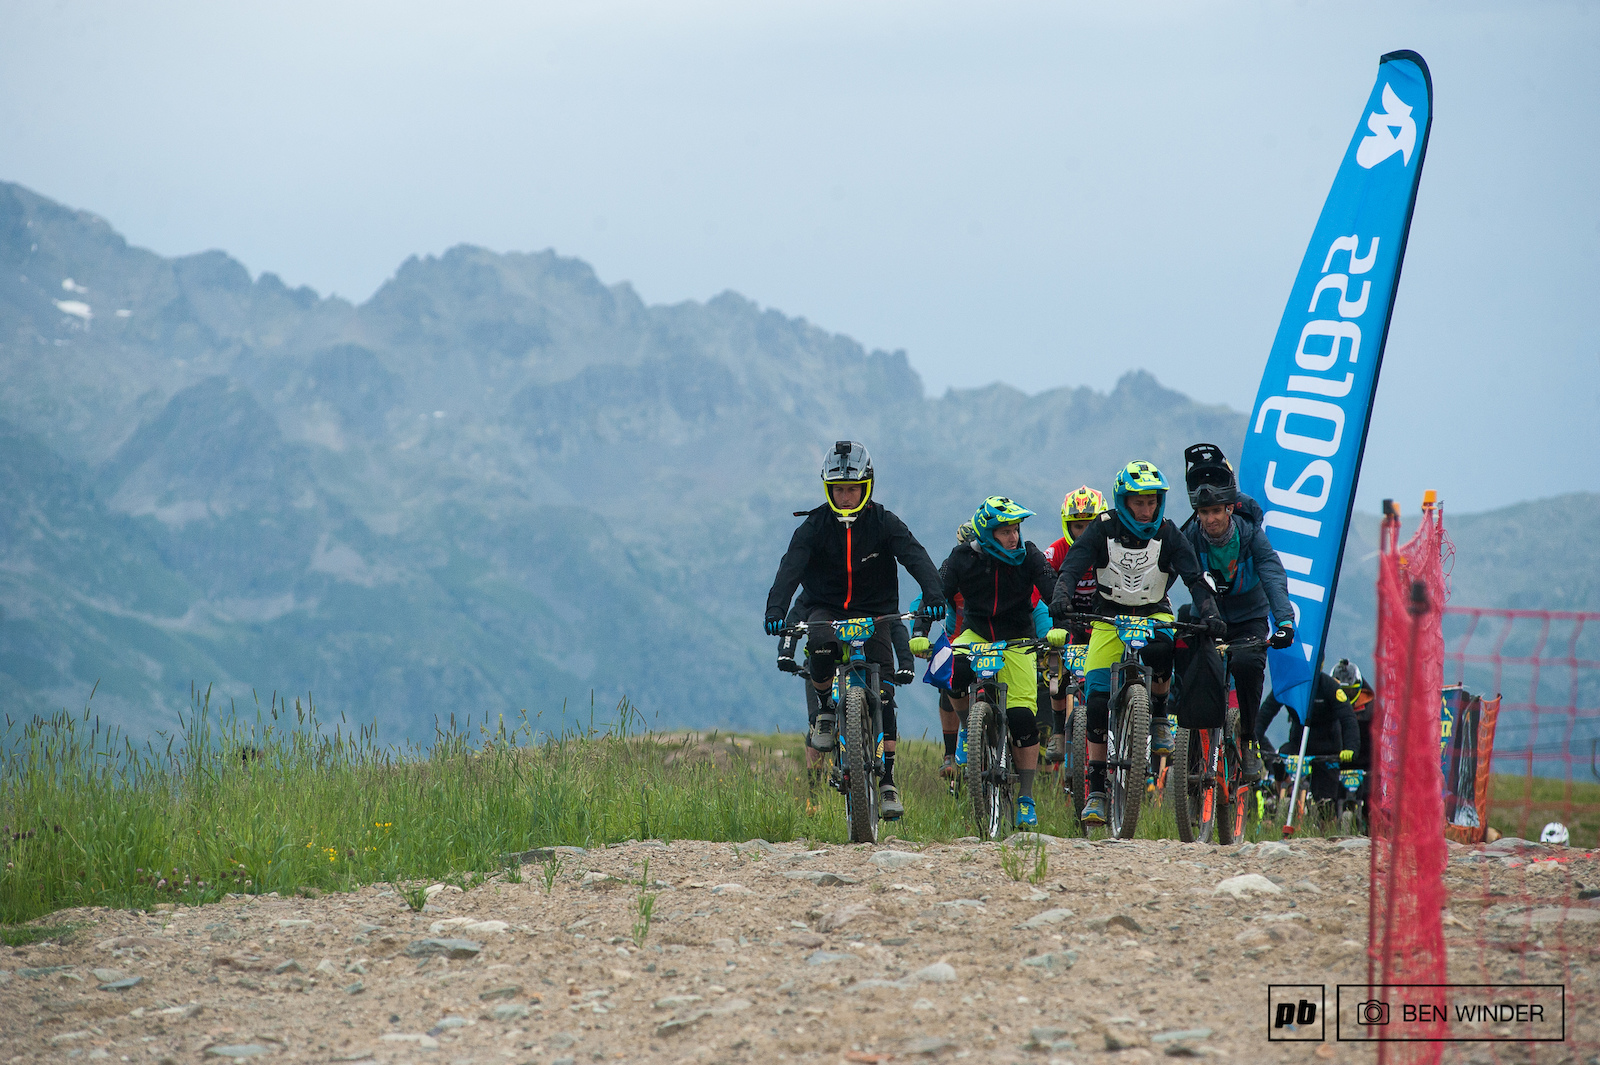 Riders began to make their way to the start line a short pedal from the lift station.